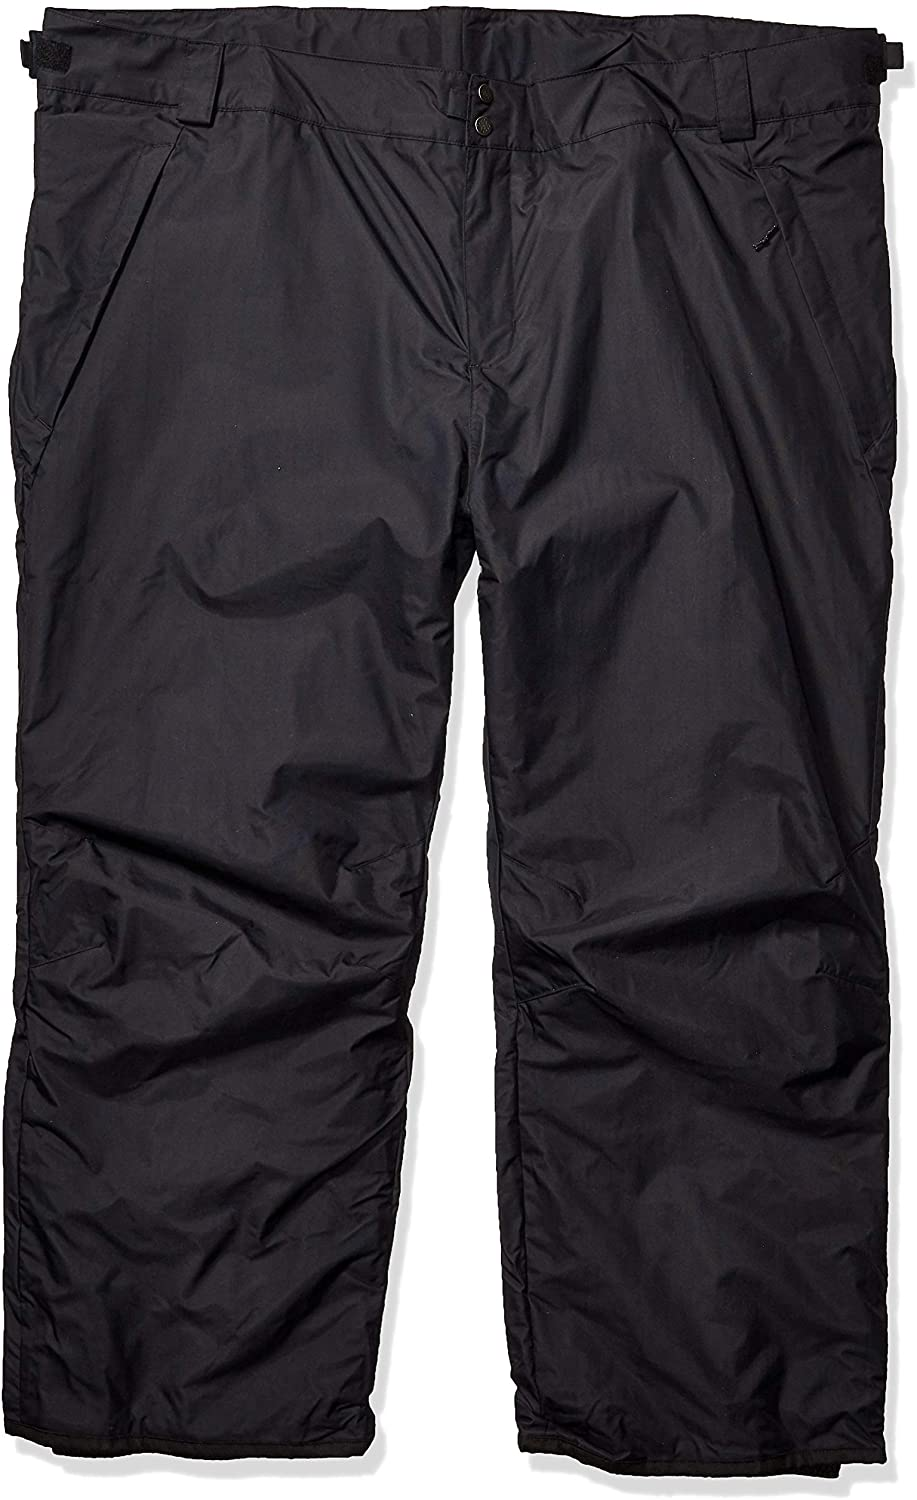 Columbia Men's Ride On Snow Pants, Waterproof & Breathable